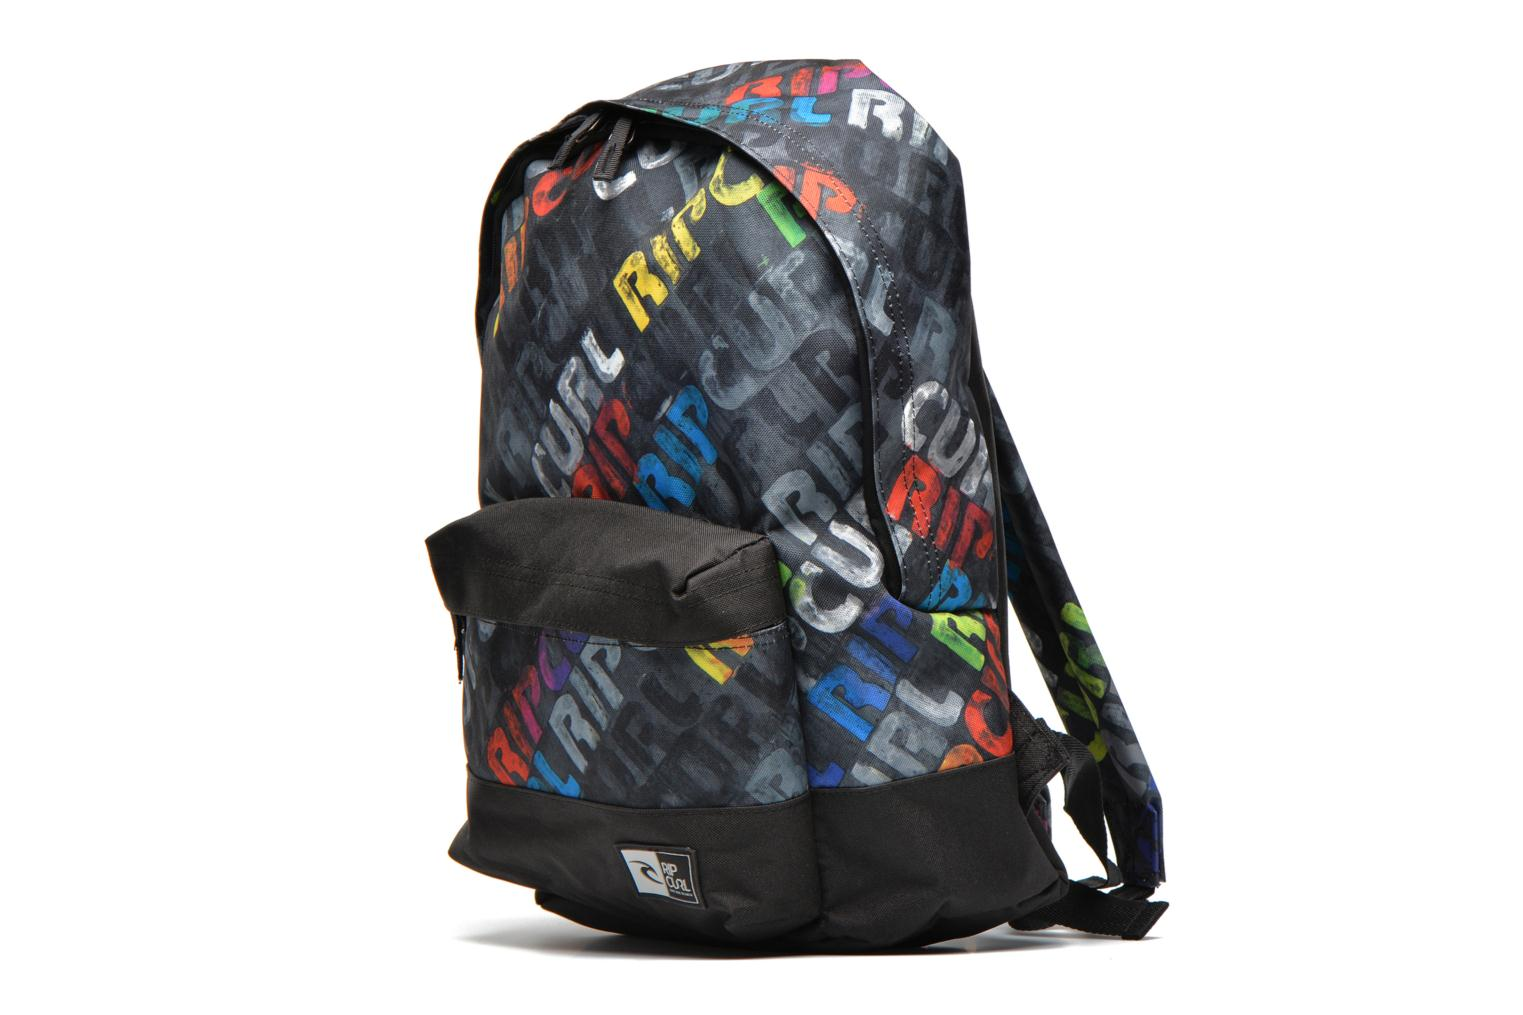 Rugzakken Rip Curl Dome Multicolor model